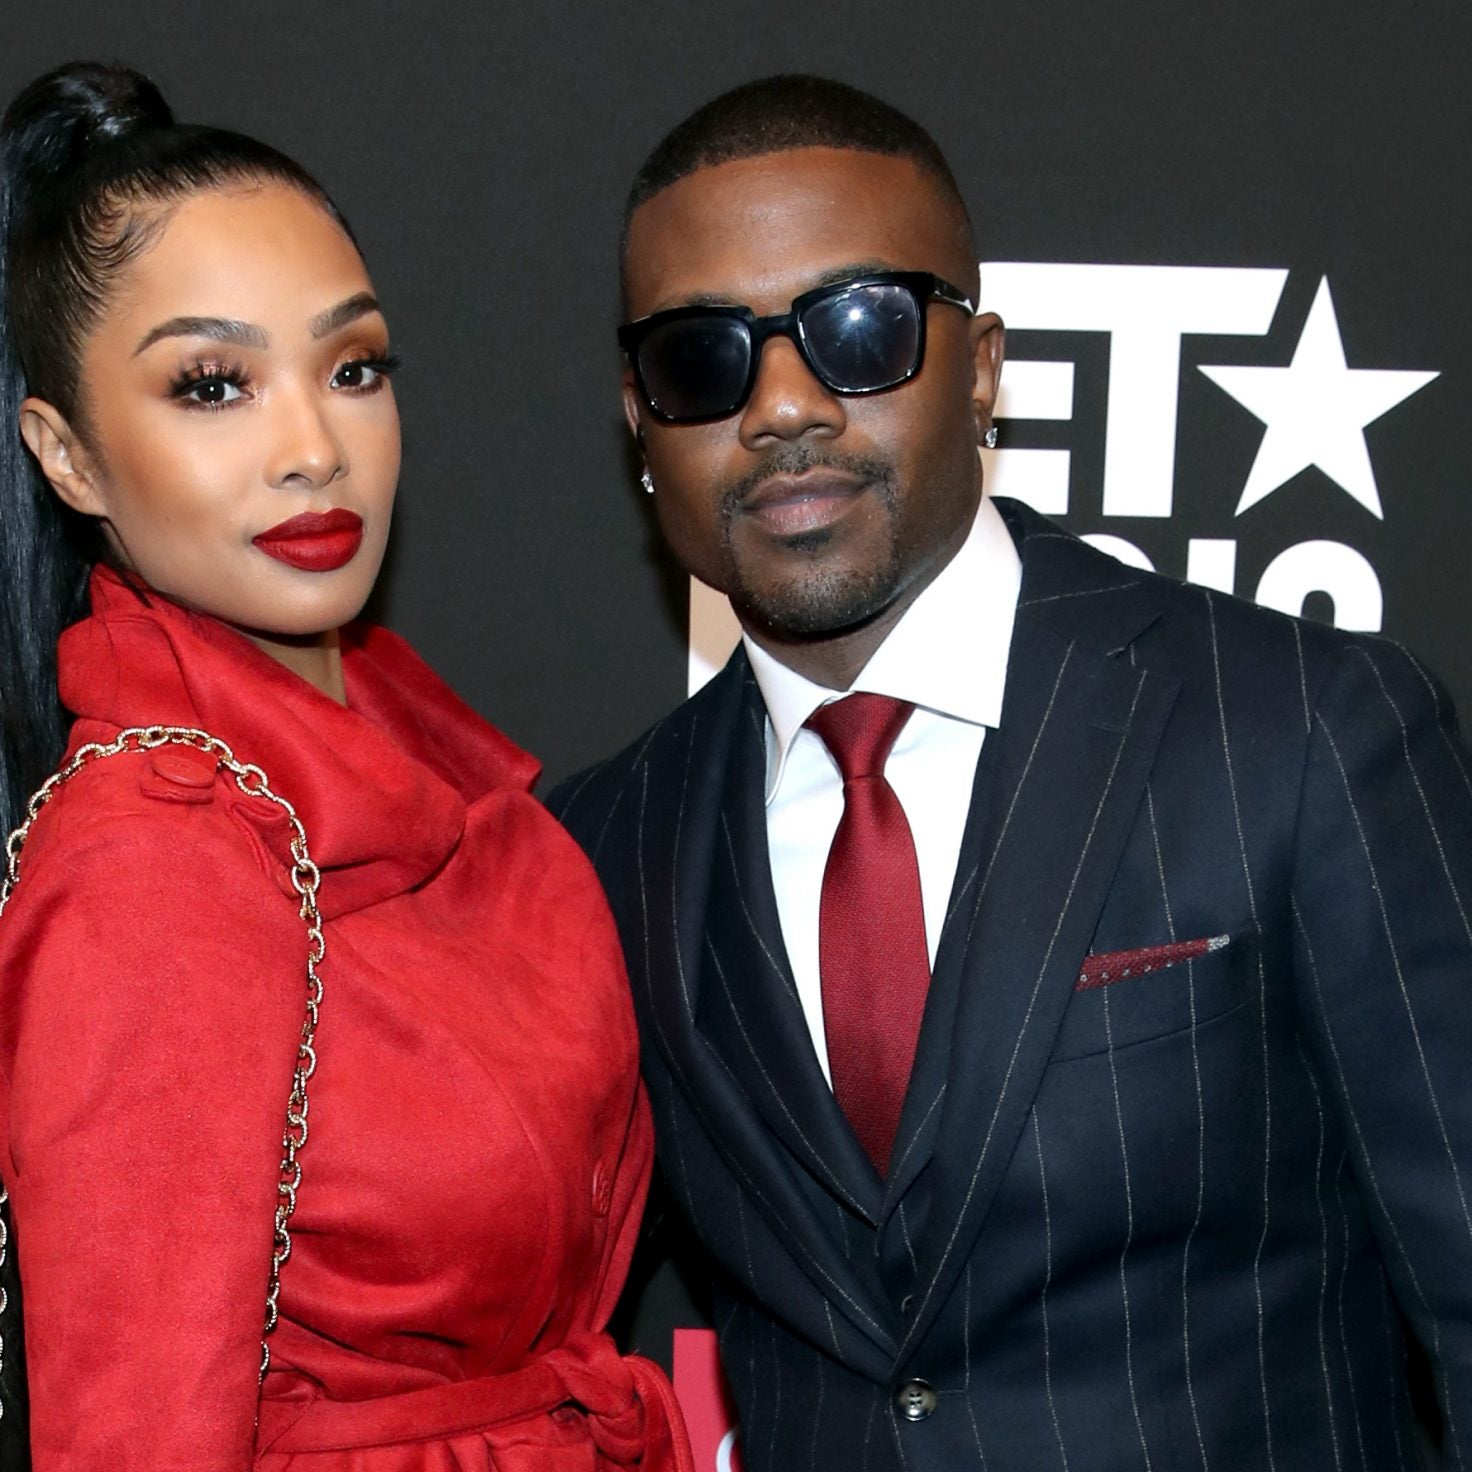 Watch Ray J and Princess Love Attempt To Save Their Marriage In This Dramatic New Trailer